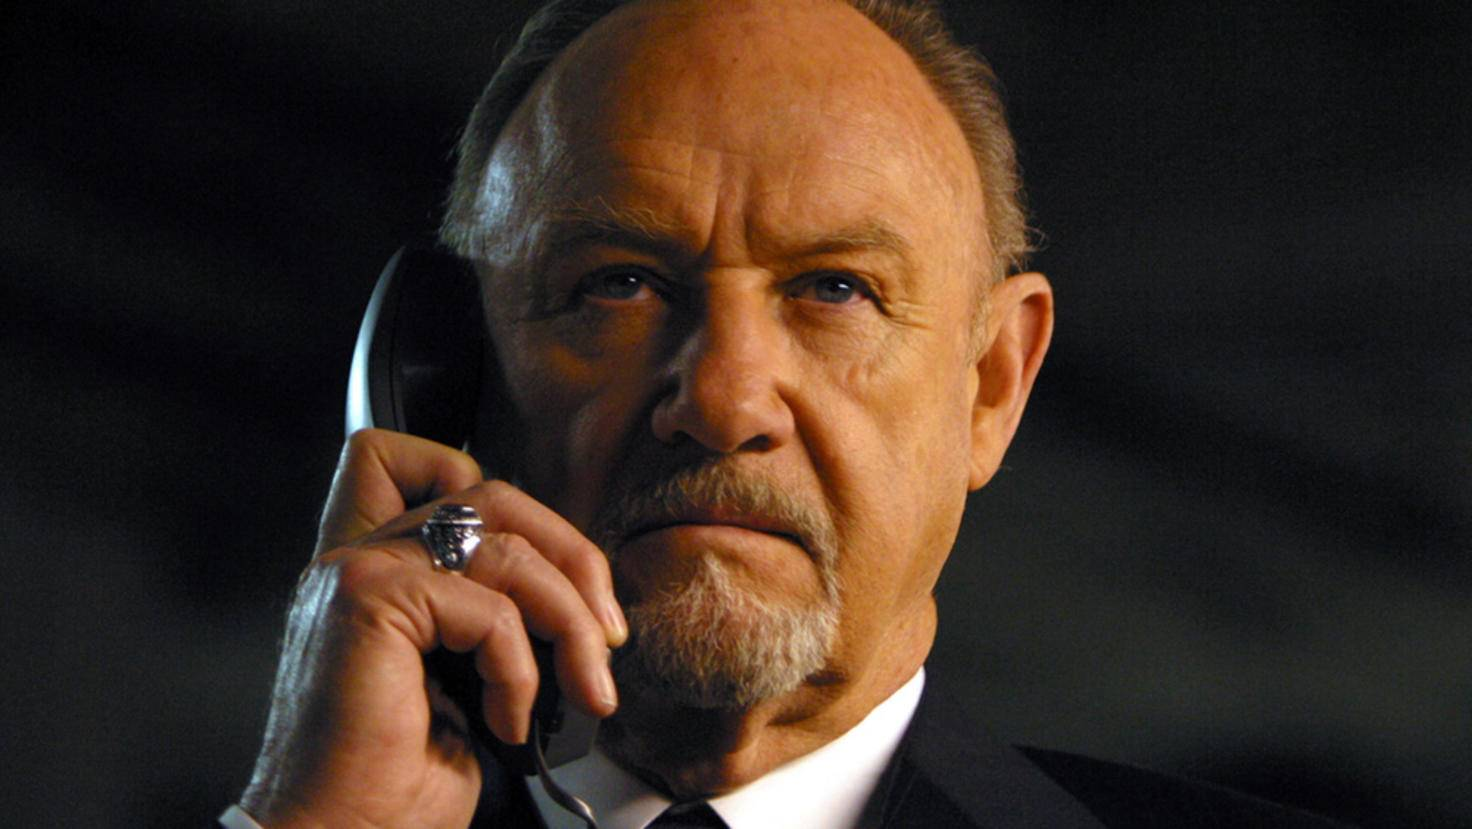 Gene Hackman-picture alliance-United Archives-85938829